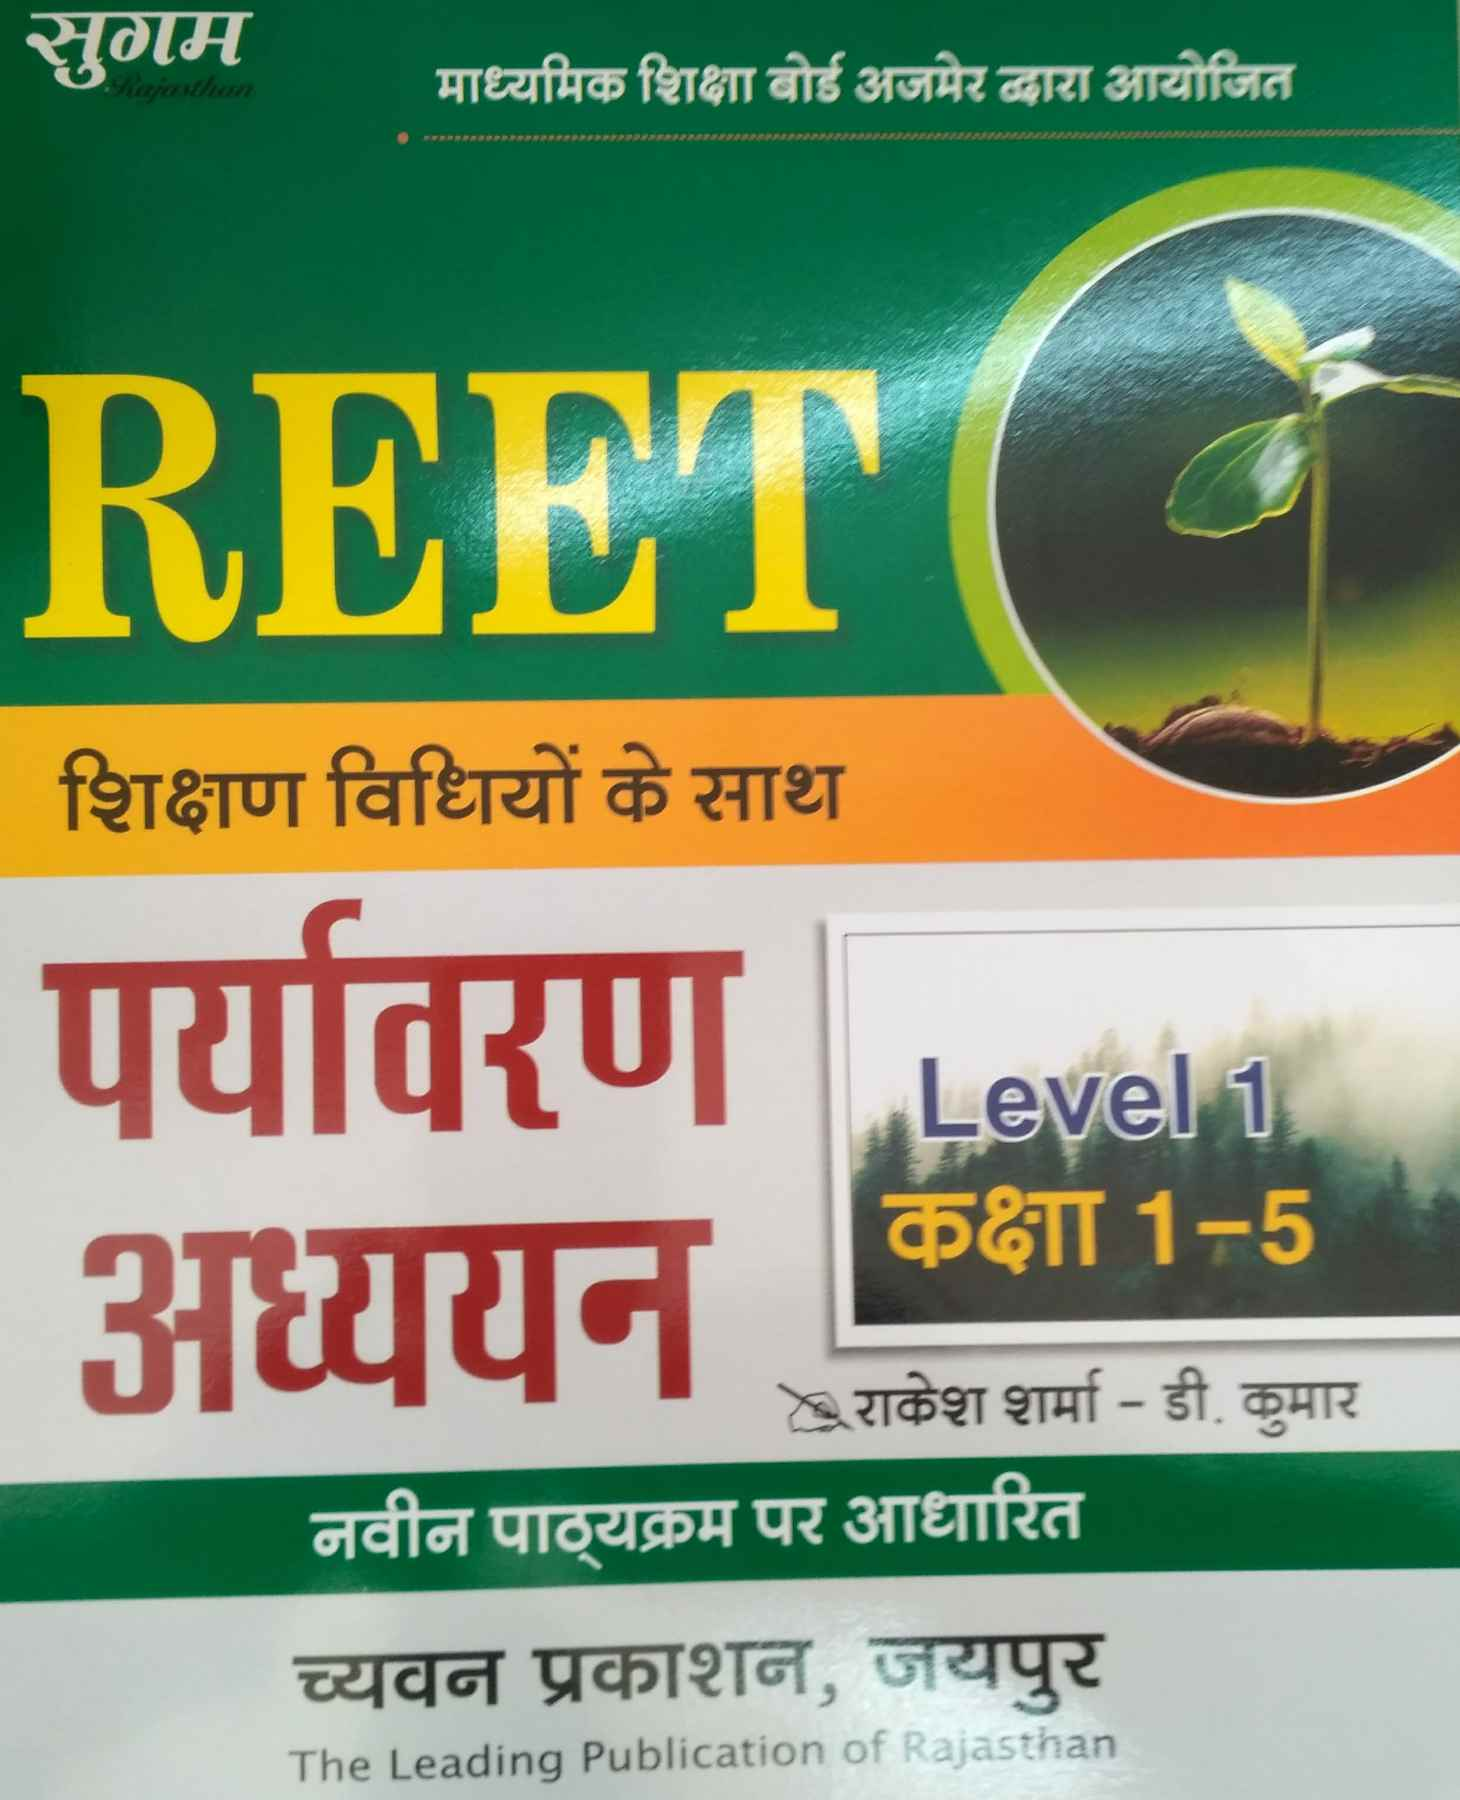 Best books for reet rajasthan eligibility examination for teachers chavyan reet level i teachi fandeluxe